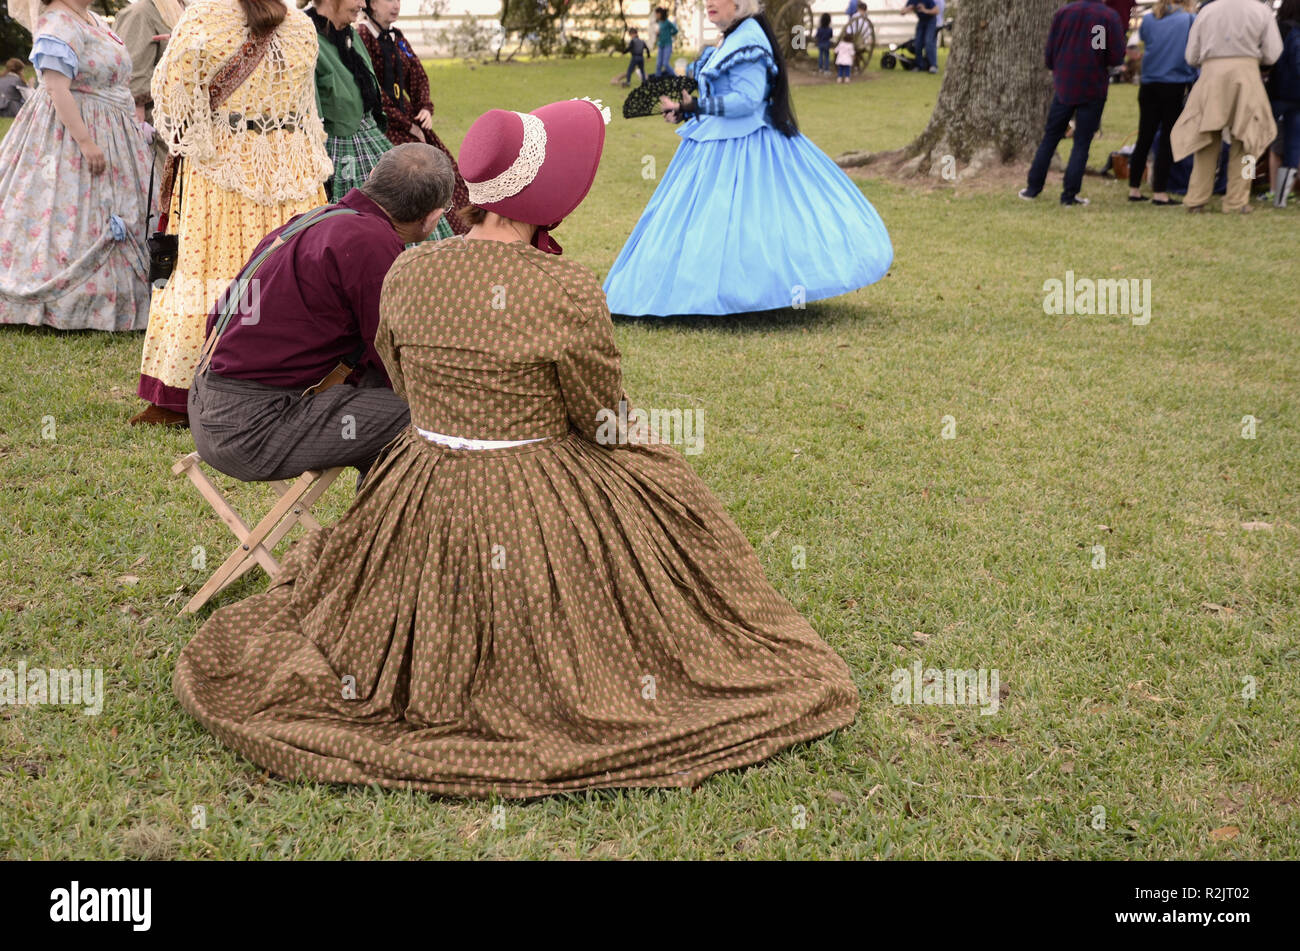 American Civil War reenactment; women in 19th century costumes (dresses, hats); Liendo Plantation, Texas, USA. - Stock Image